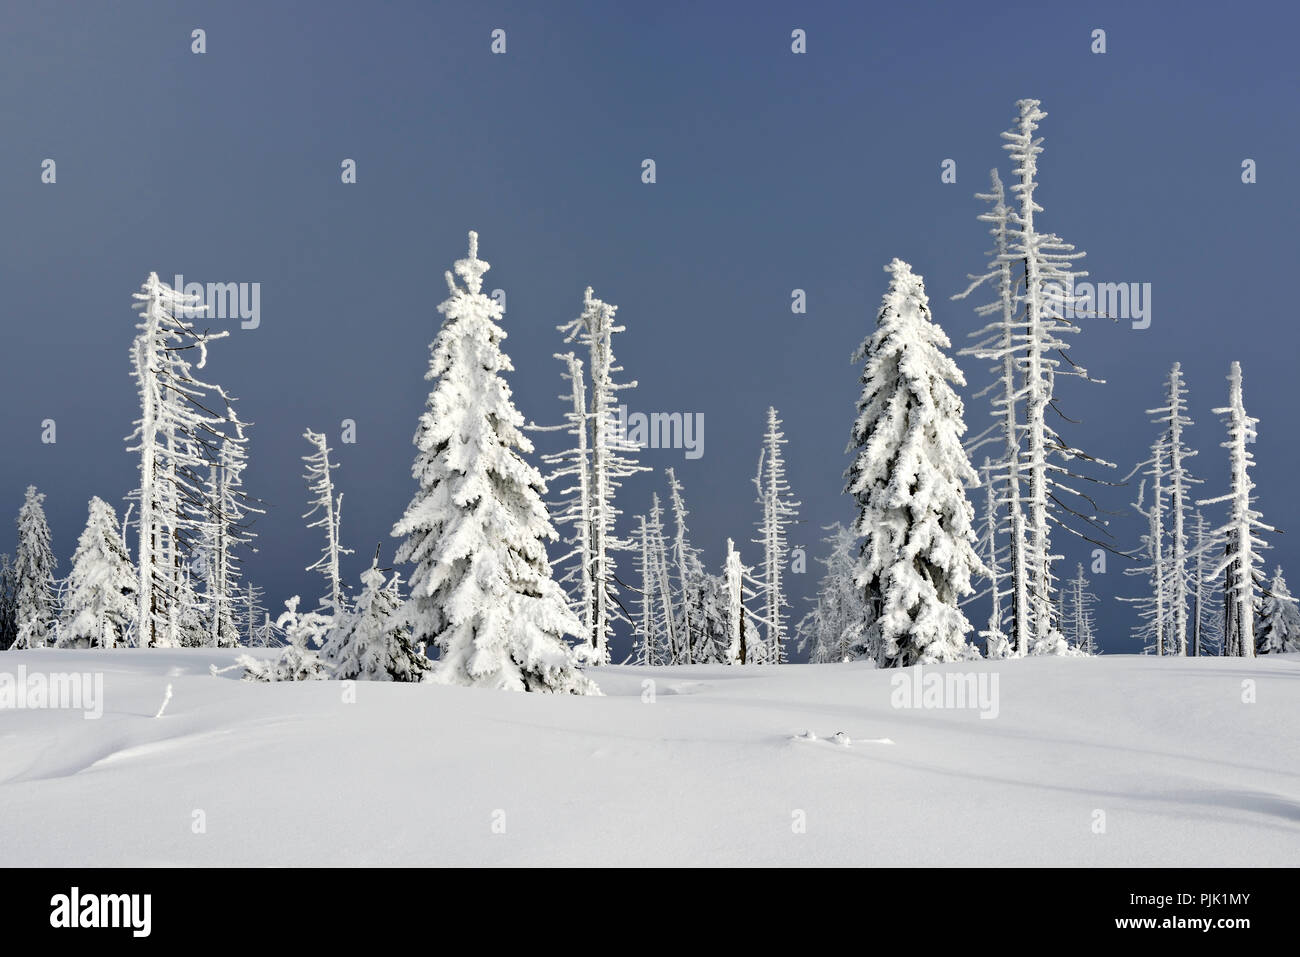 snow covered winter landscape on the mountain. Großer Rachel in winter, spruce covered with snow and destroyed by bark beetle infestation, Bavarian Forest nature park, Bavaria, Germany - Stock Image